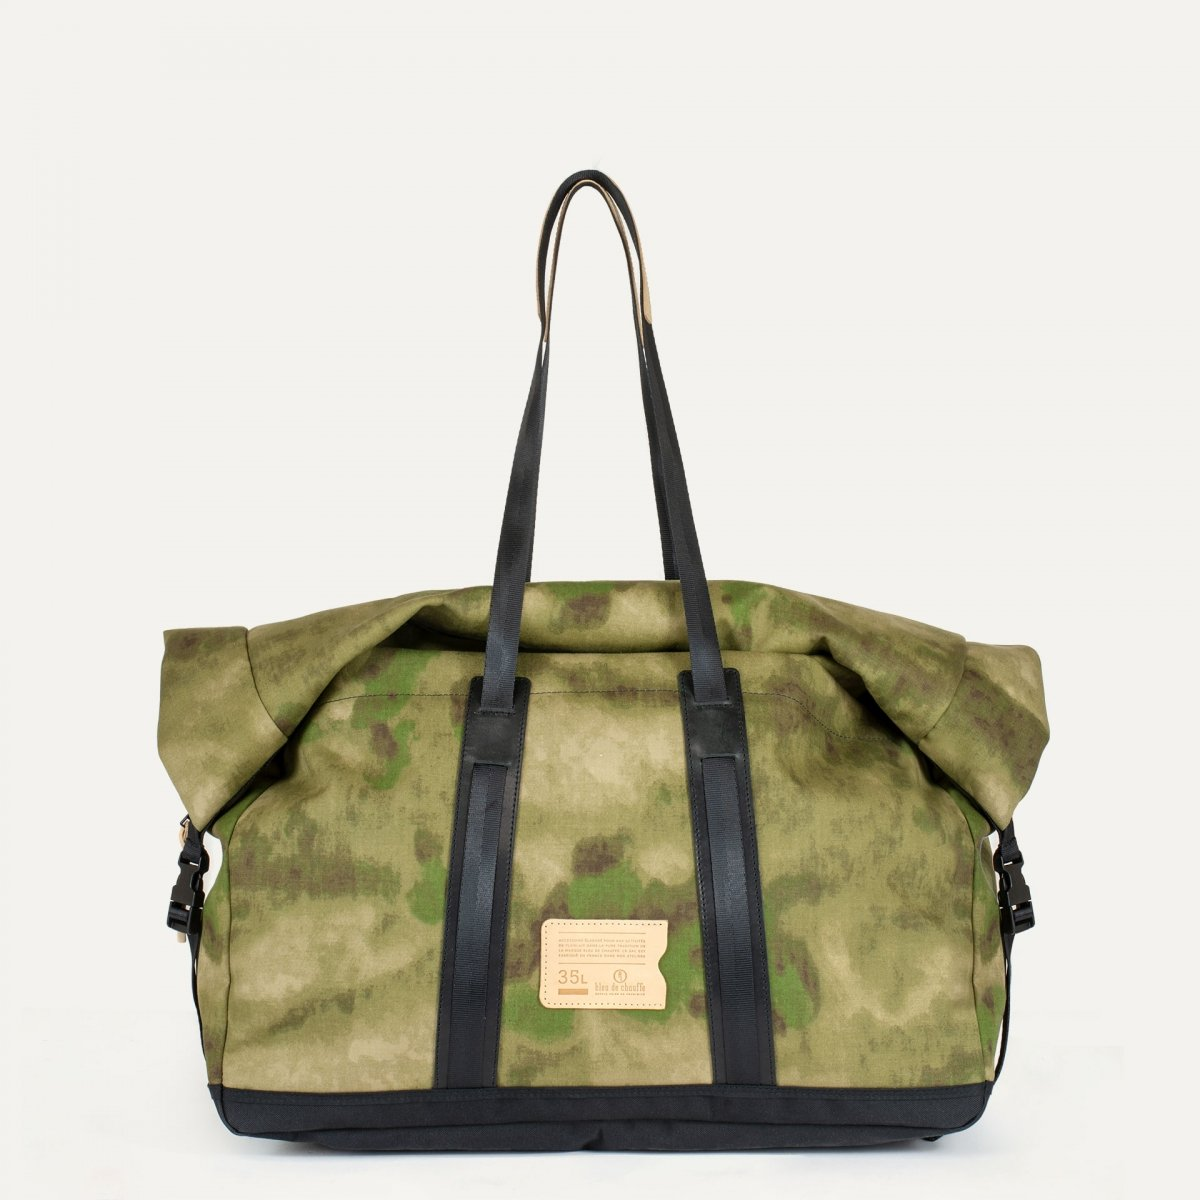 35L Baroud Travel bag - Camo (image n°1)